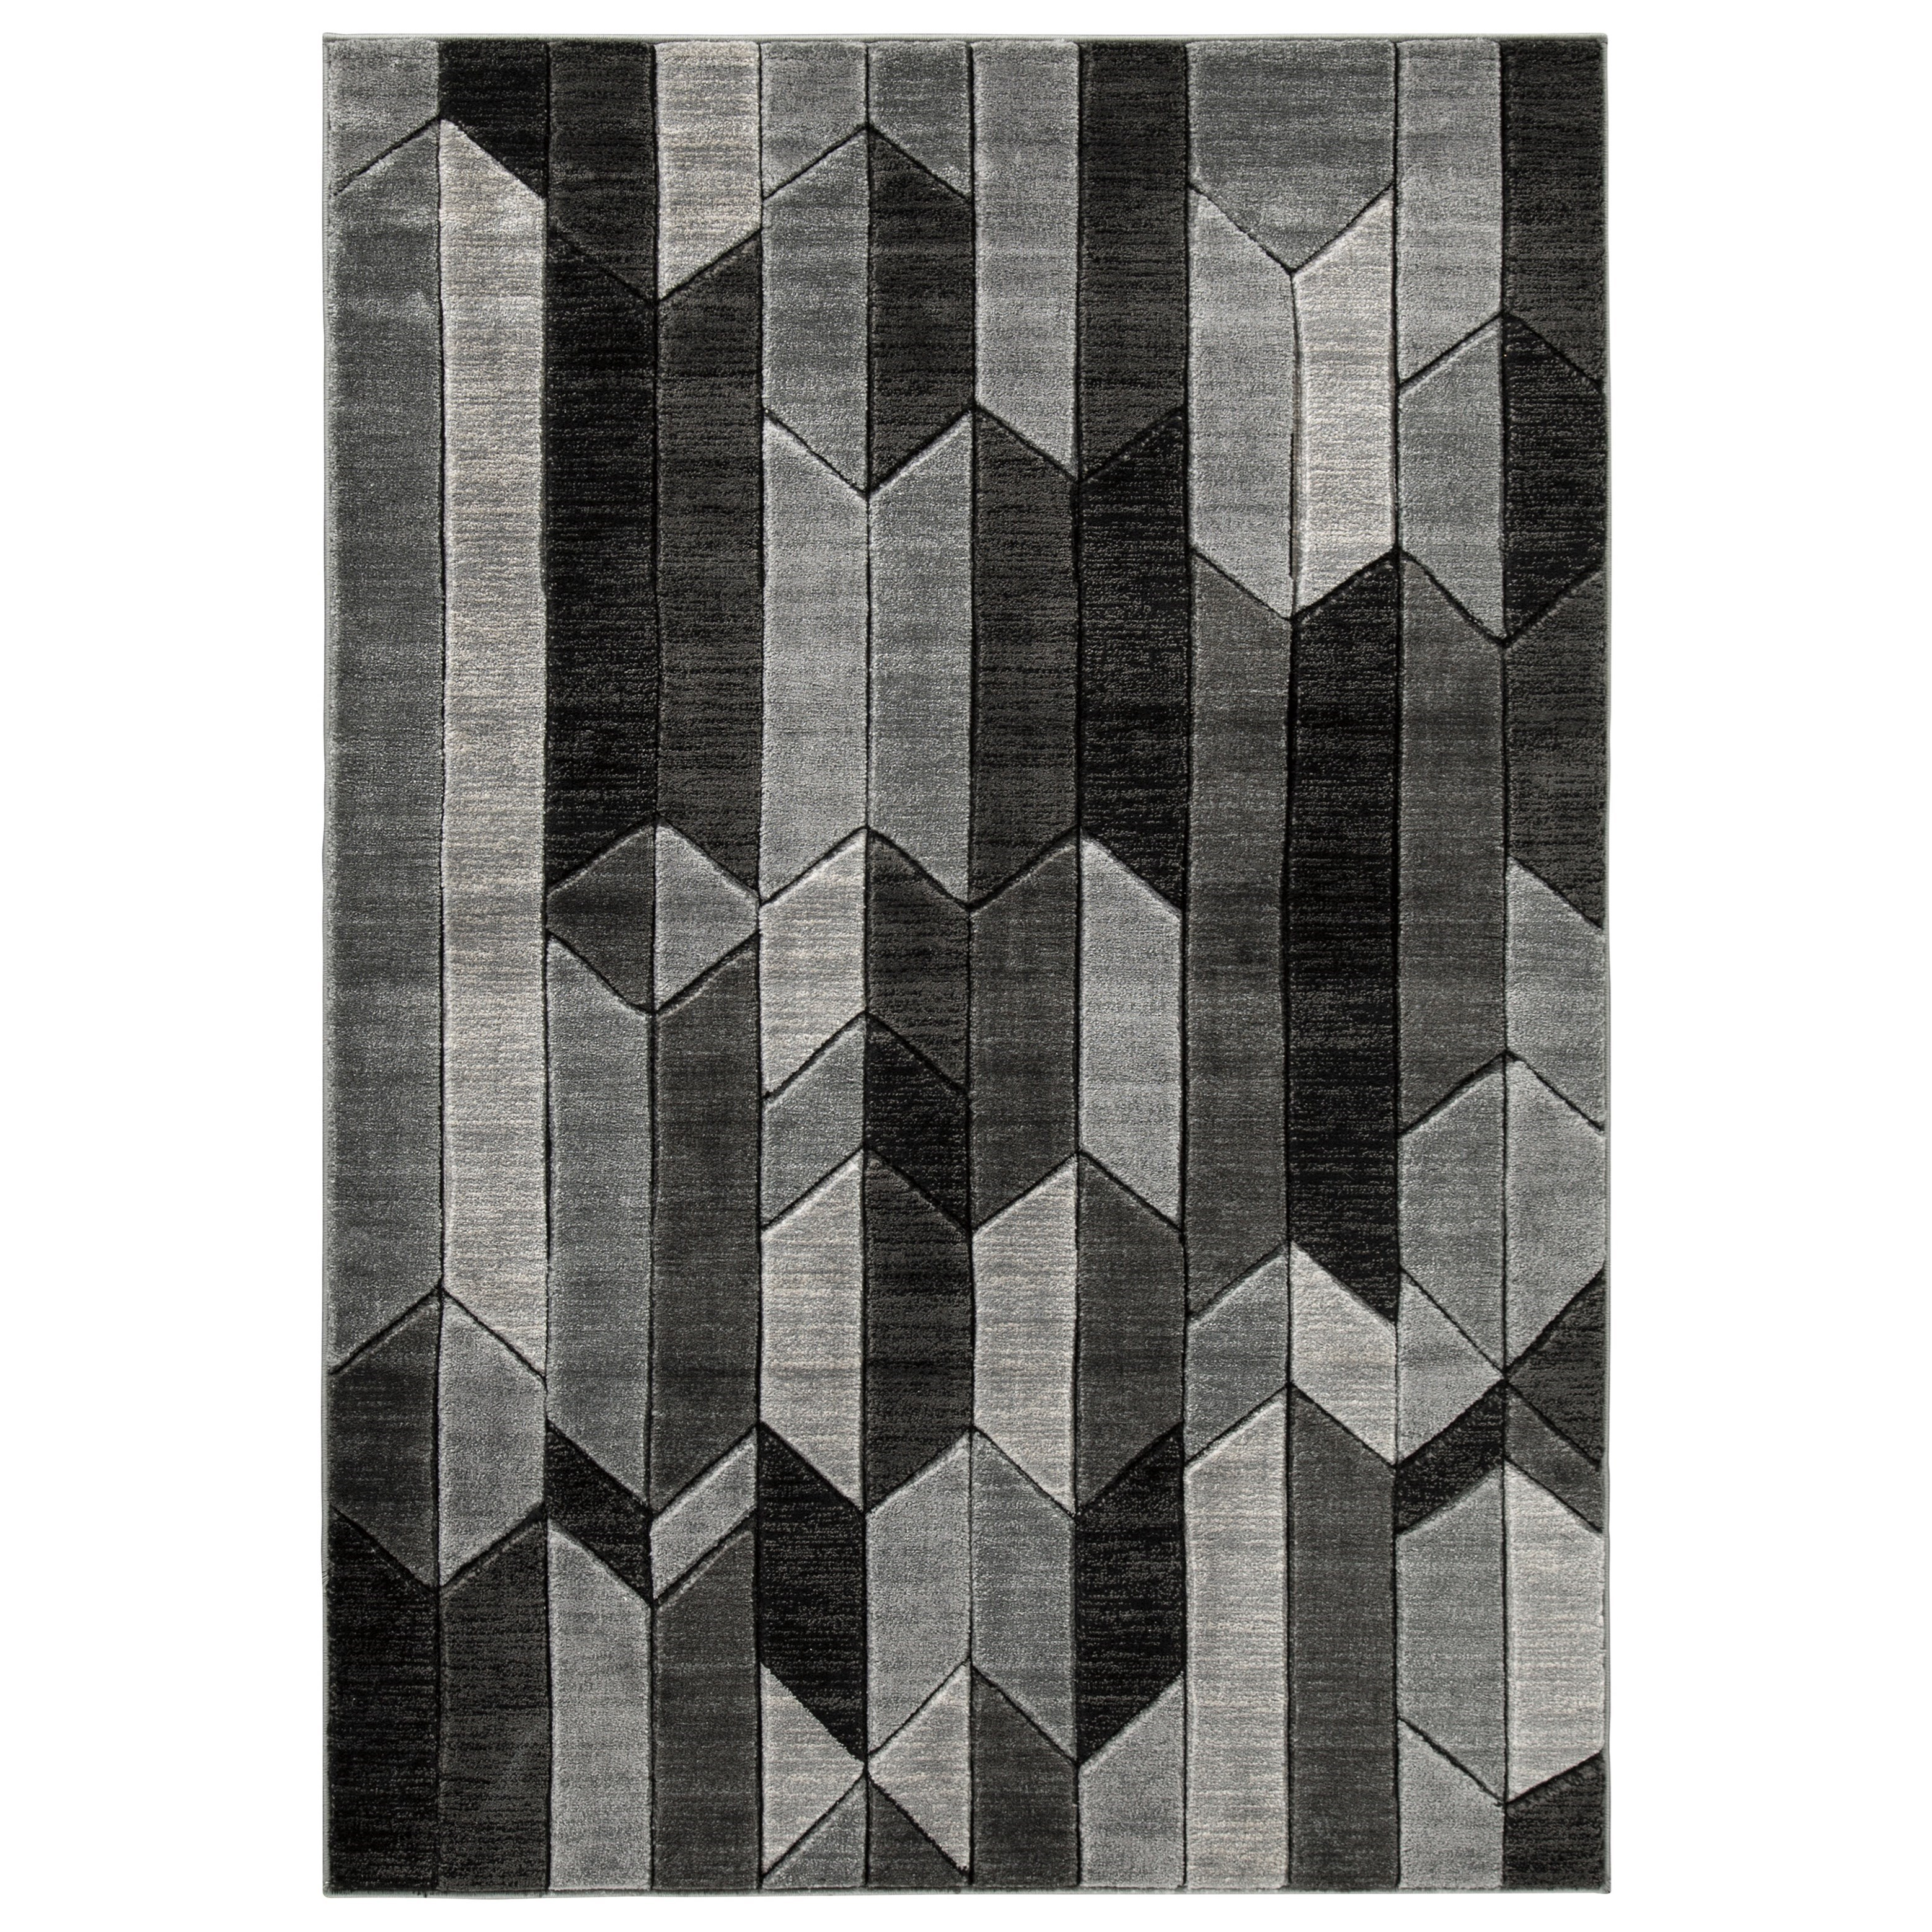 Contemporary Area Rugs Chayse Gray Medium Rug by Signature at Walker's Furniture